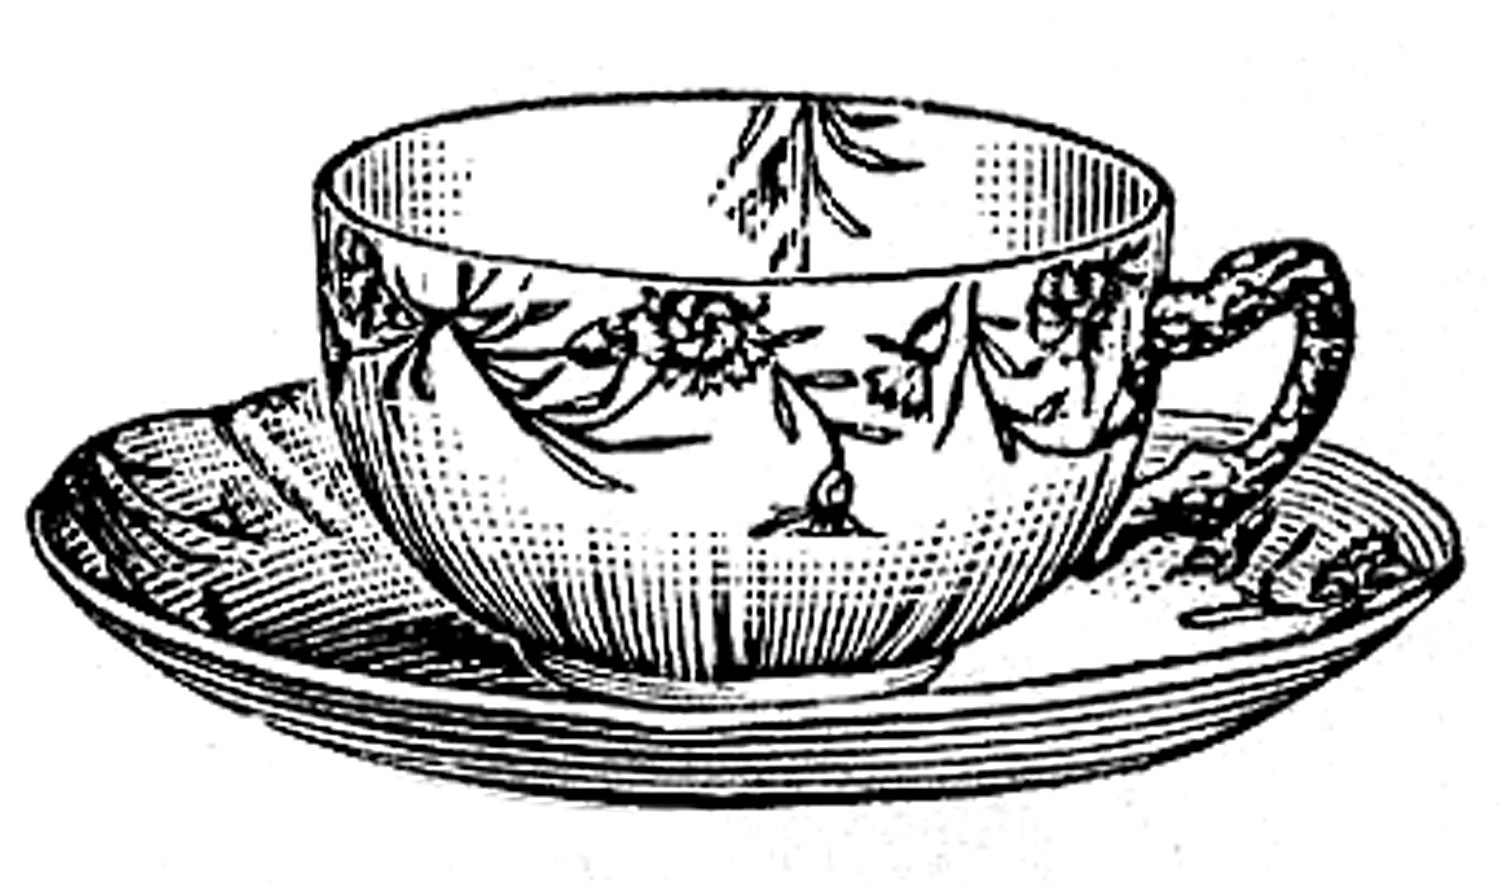 Free Black And White Teacups, Download Free Clip Art, Free.